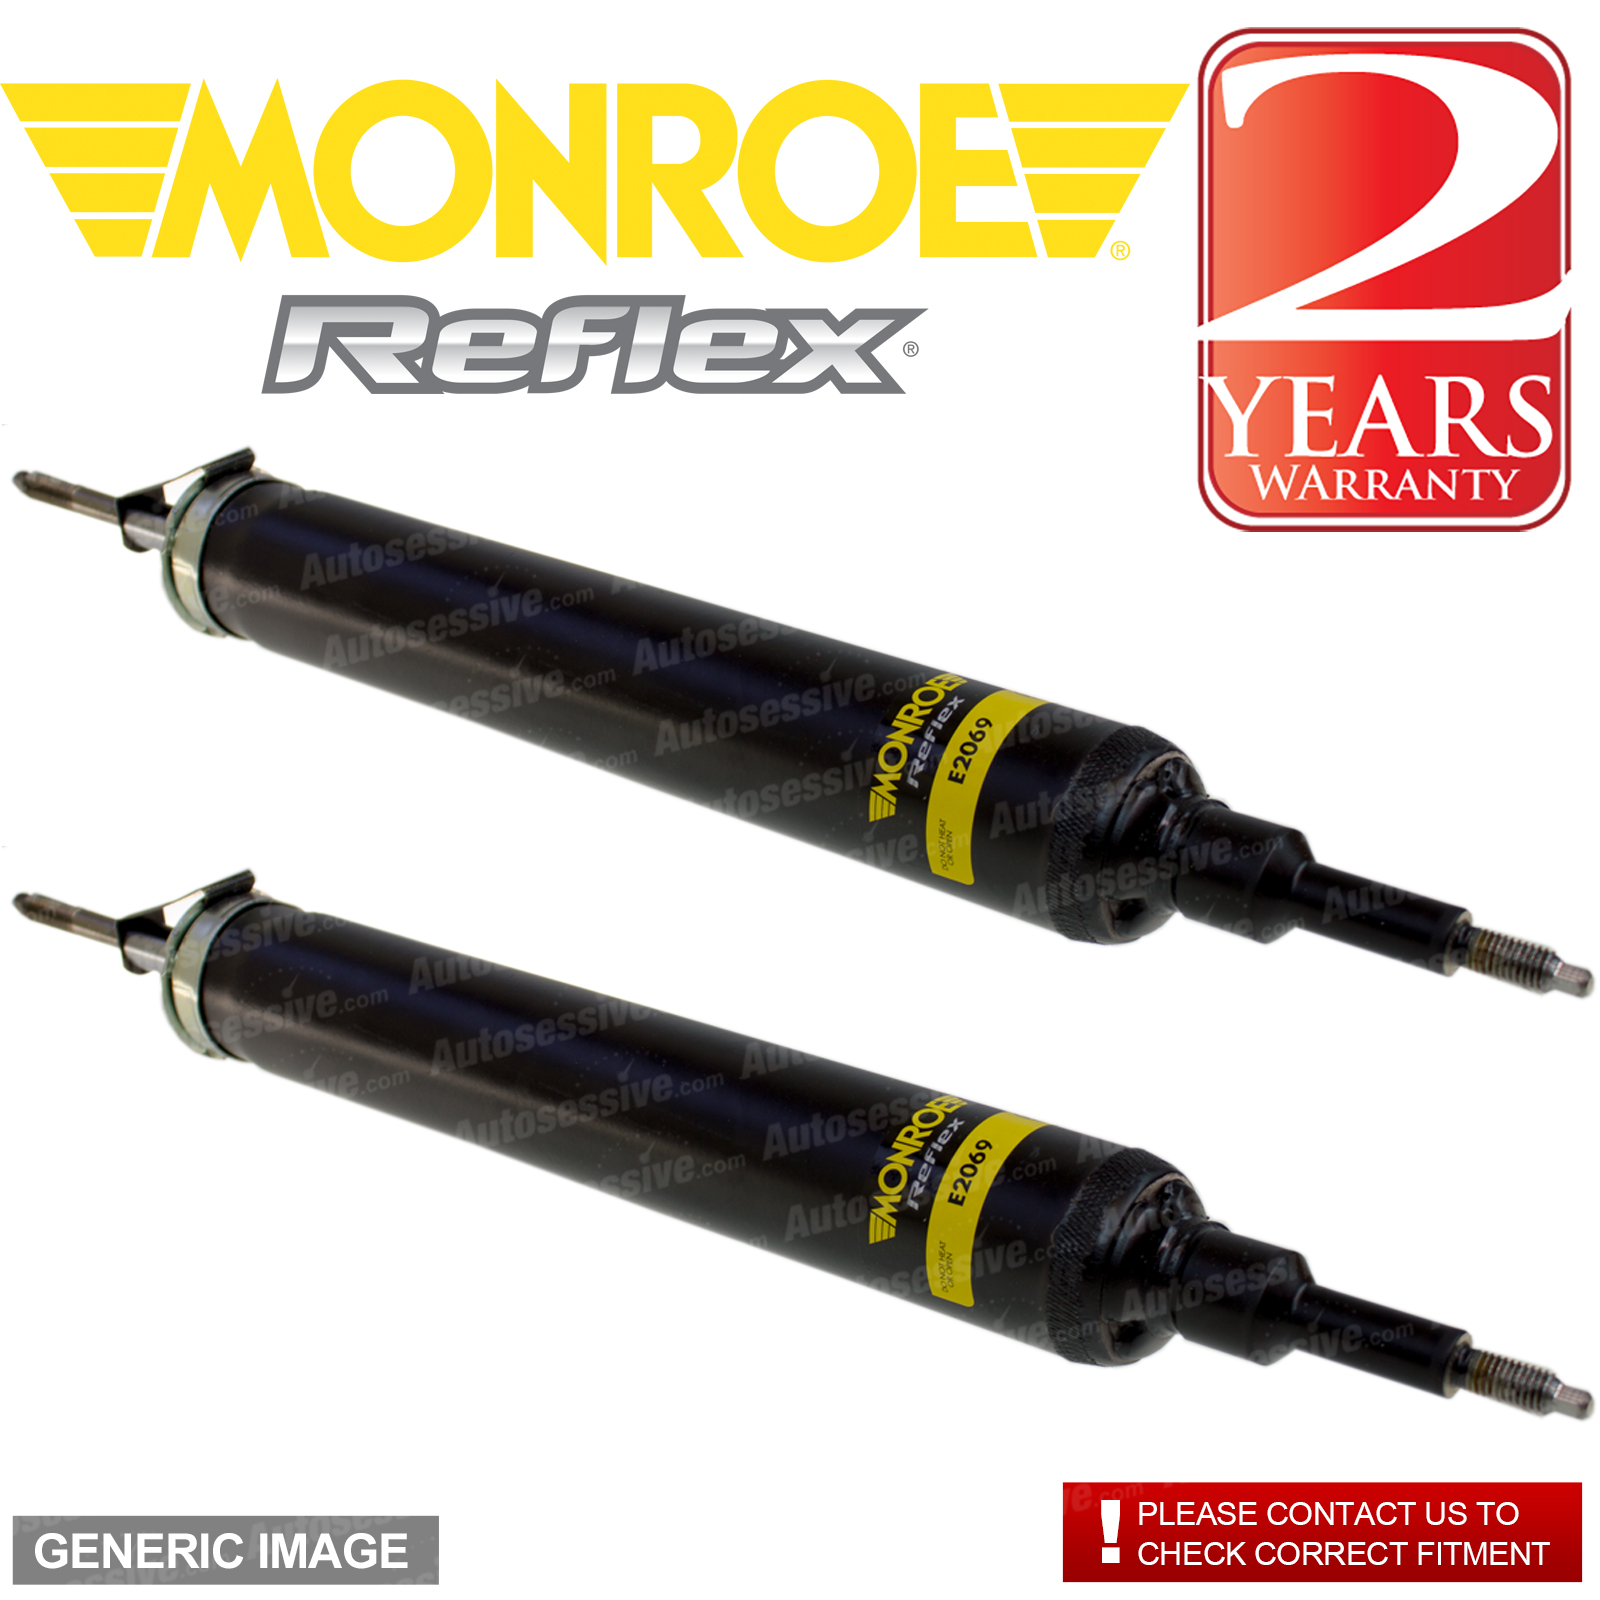 Details about Monroe Rear Right Left Reflex Shock Absorber x2 DAIHATSU  CHARADE 1 5 66kW